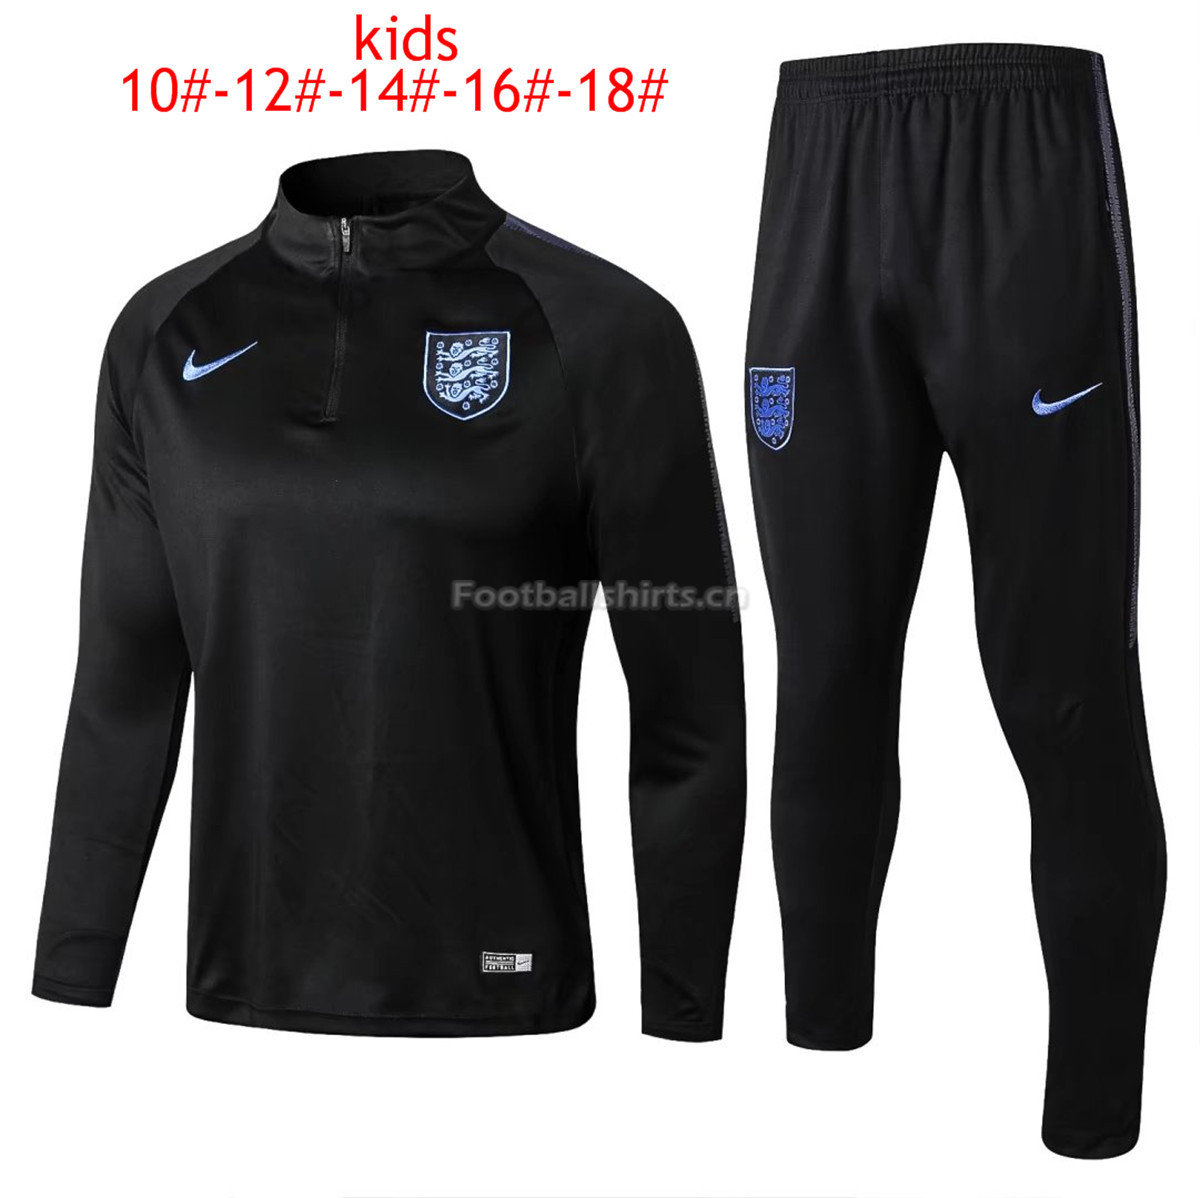 Kids England FIFA World Cup 2018 Training Suit Zipper Black